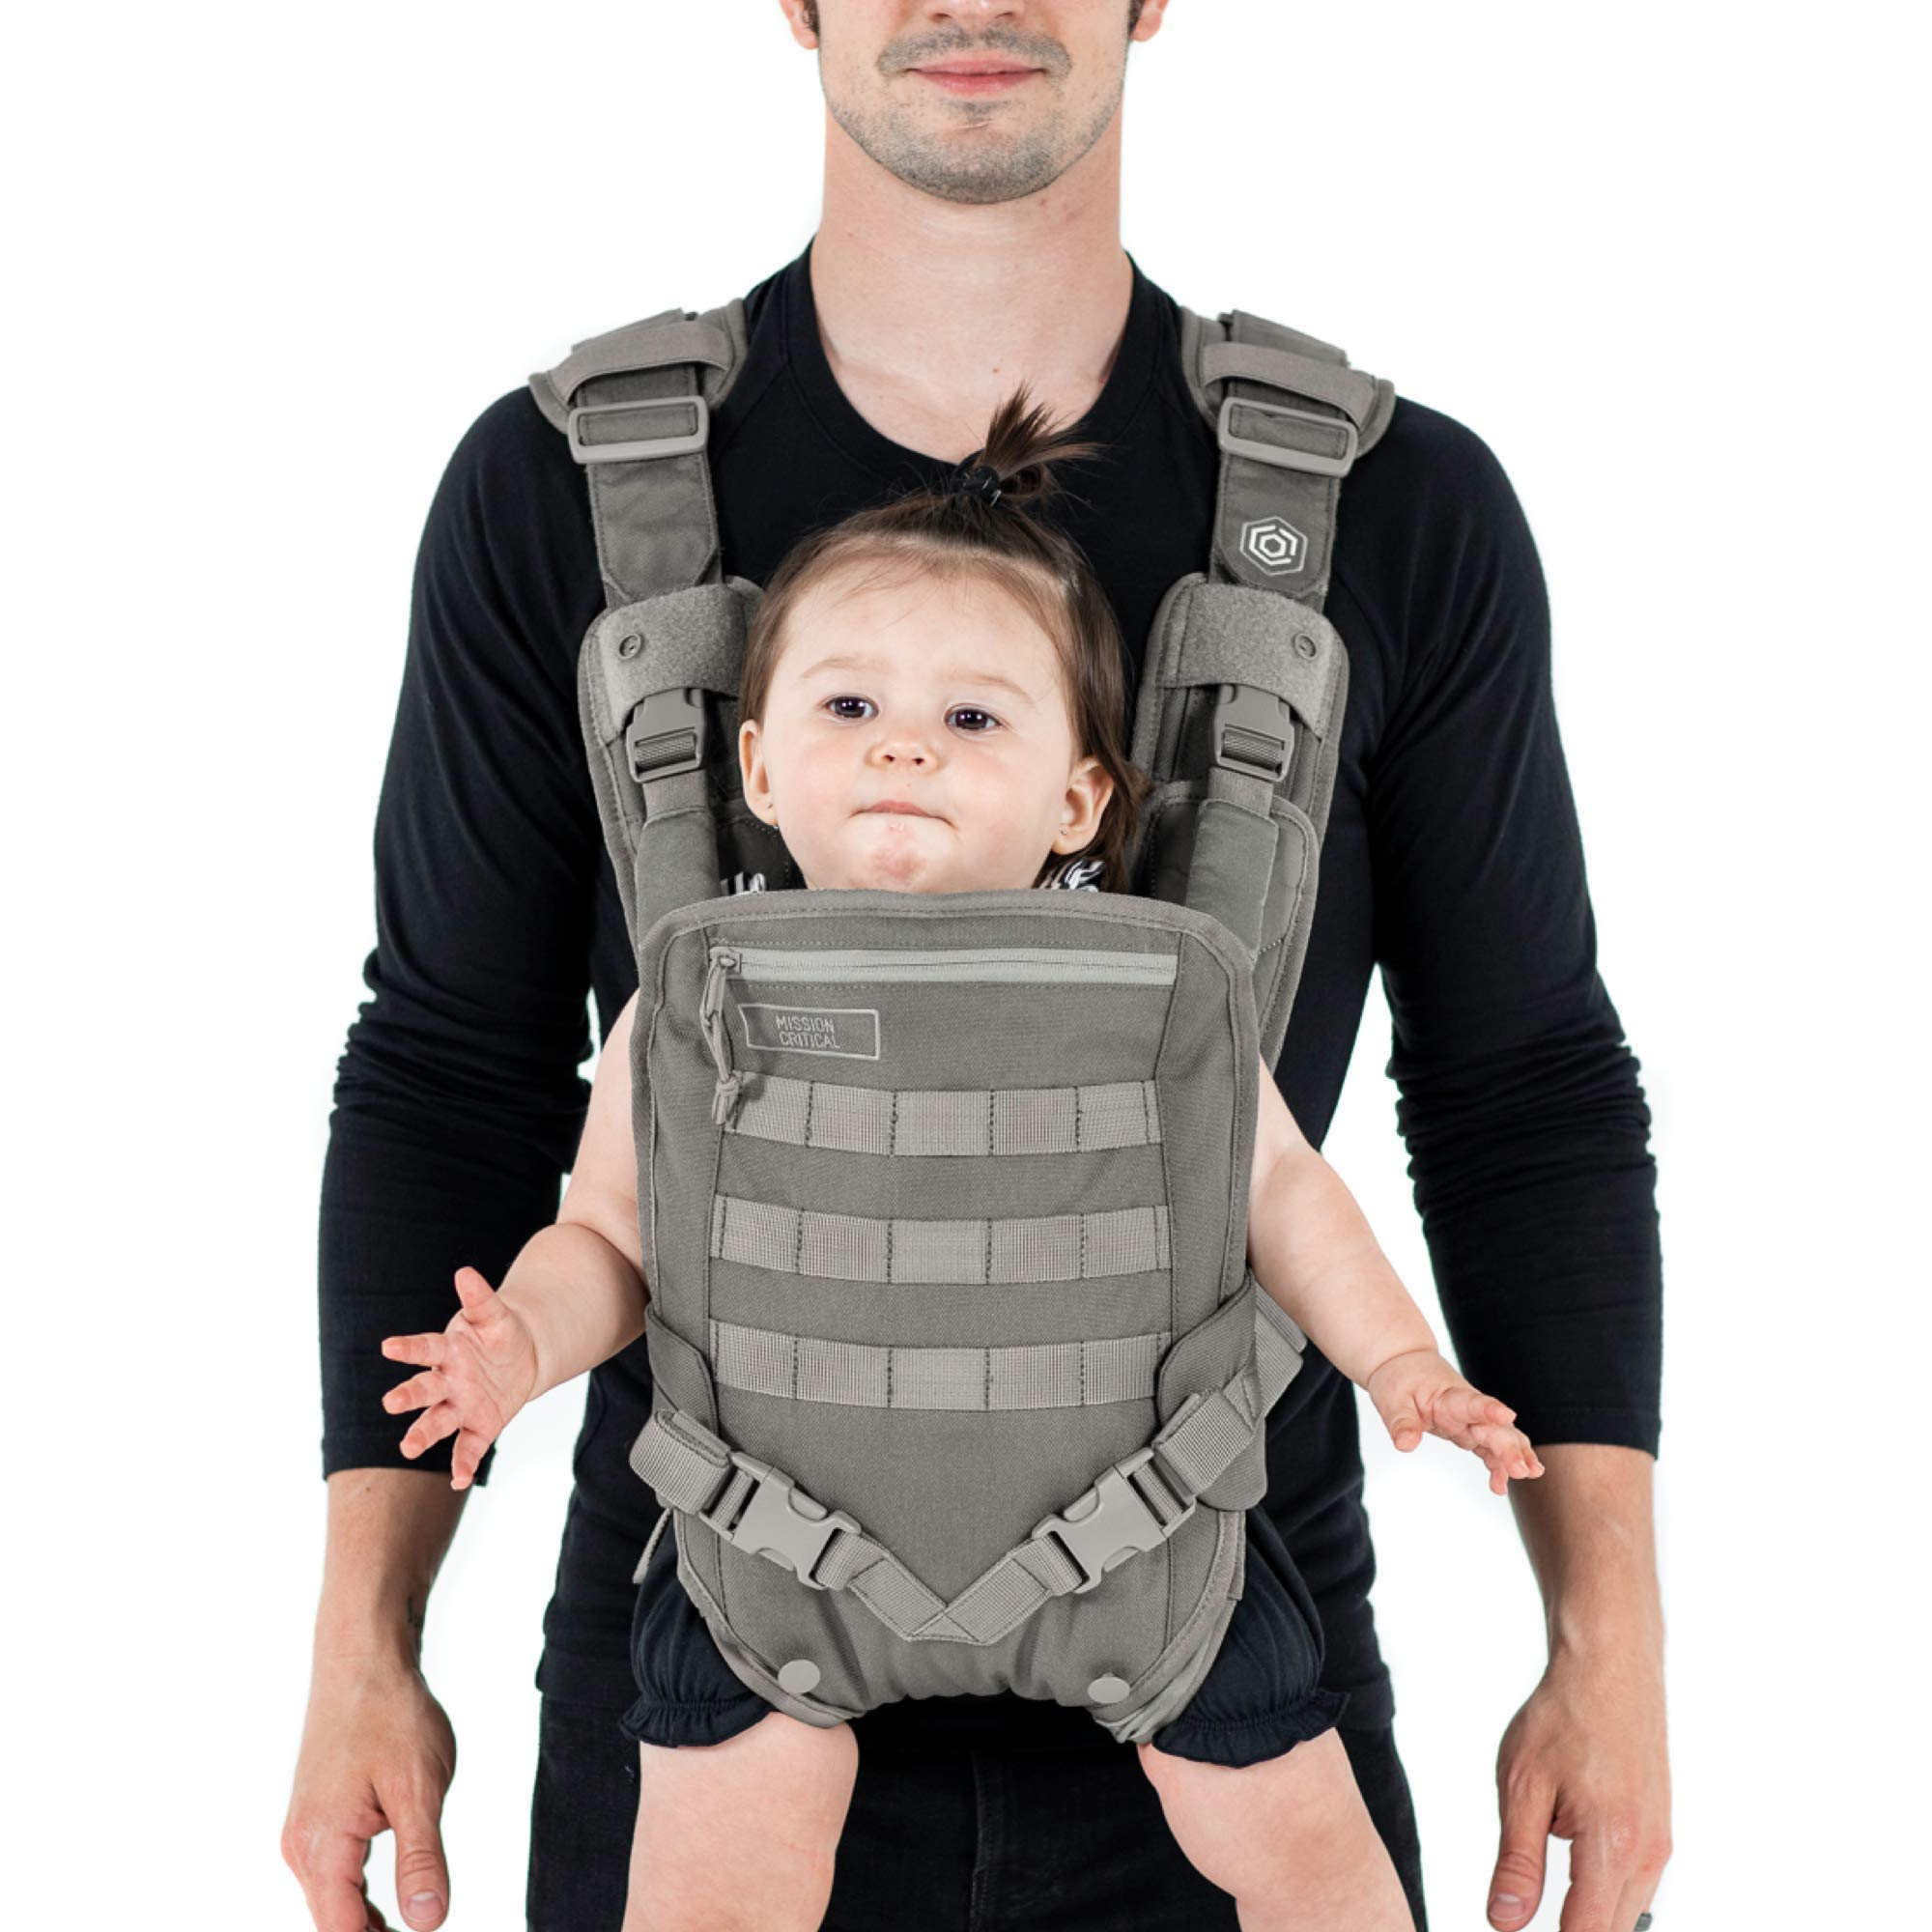 Anthracite Mission Critical Insulated Bottle Holder System 02 Designed to Work with Mission Critical Baby Carrier